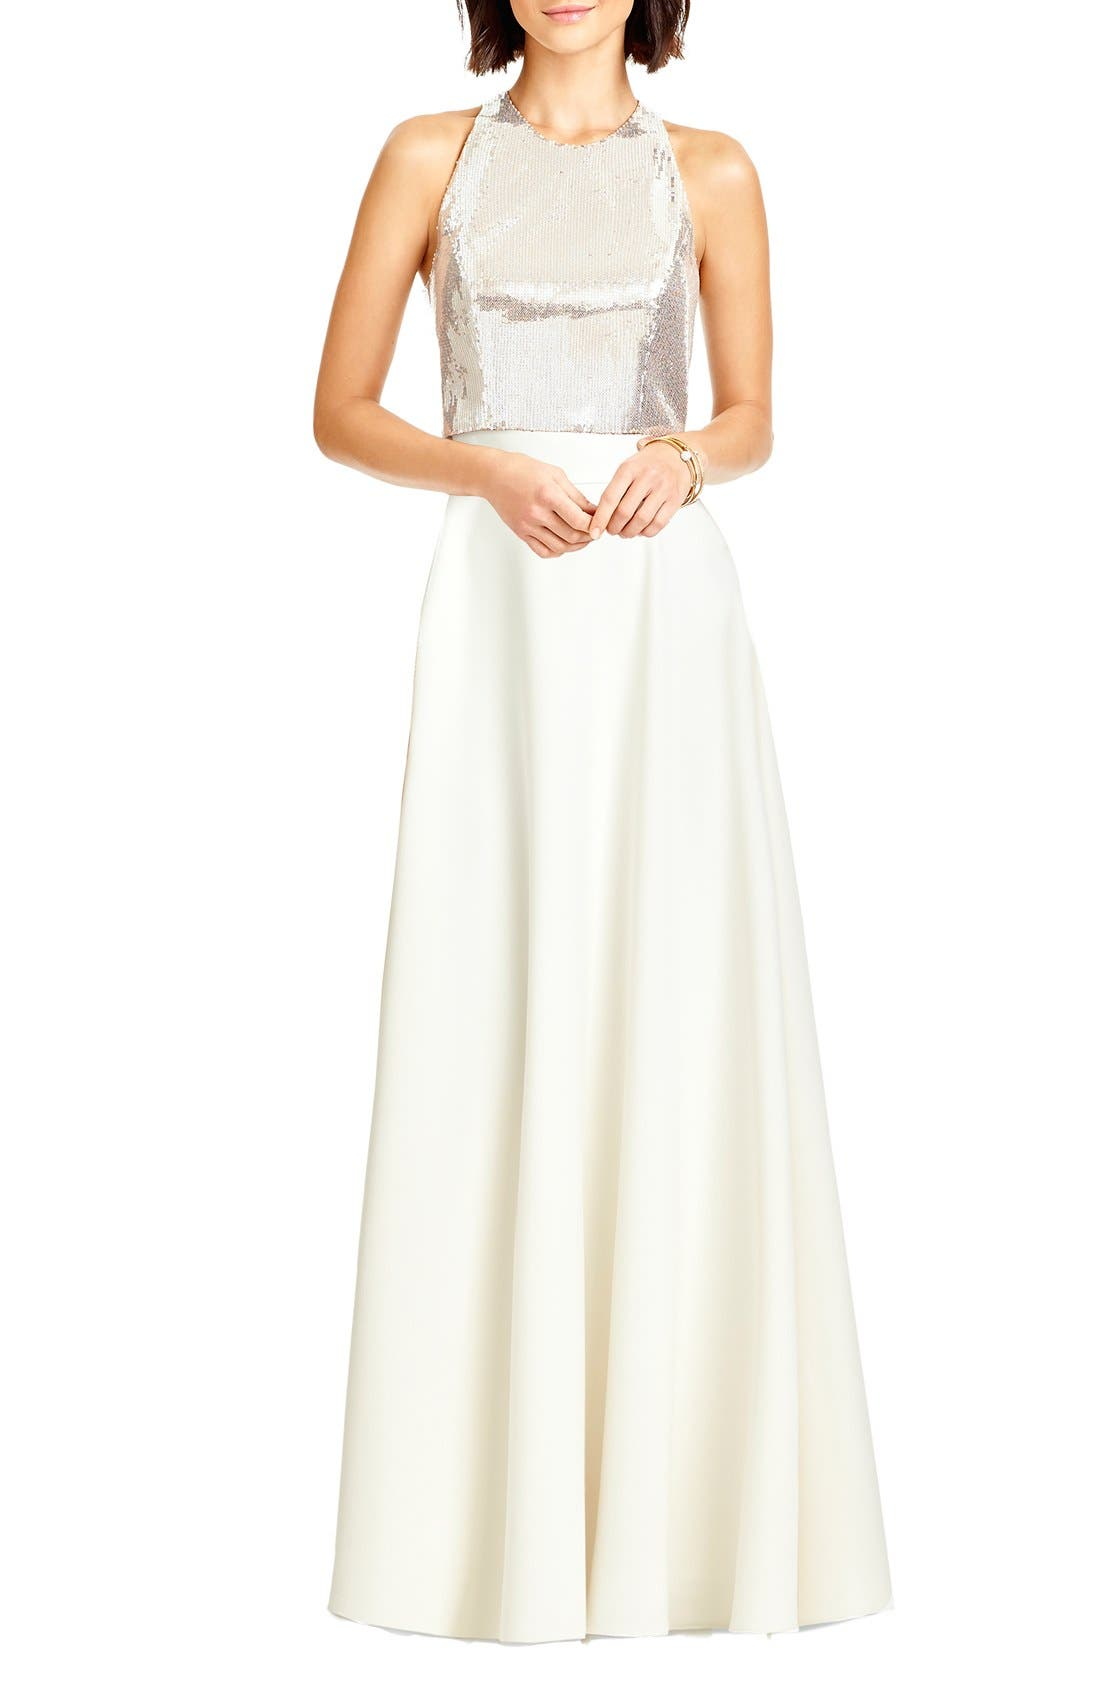 Alternate Image 1 Selected - Dessy Collection Sequin Halter Top & Long Crepe Skirt